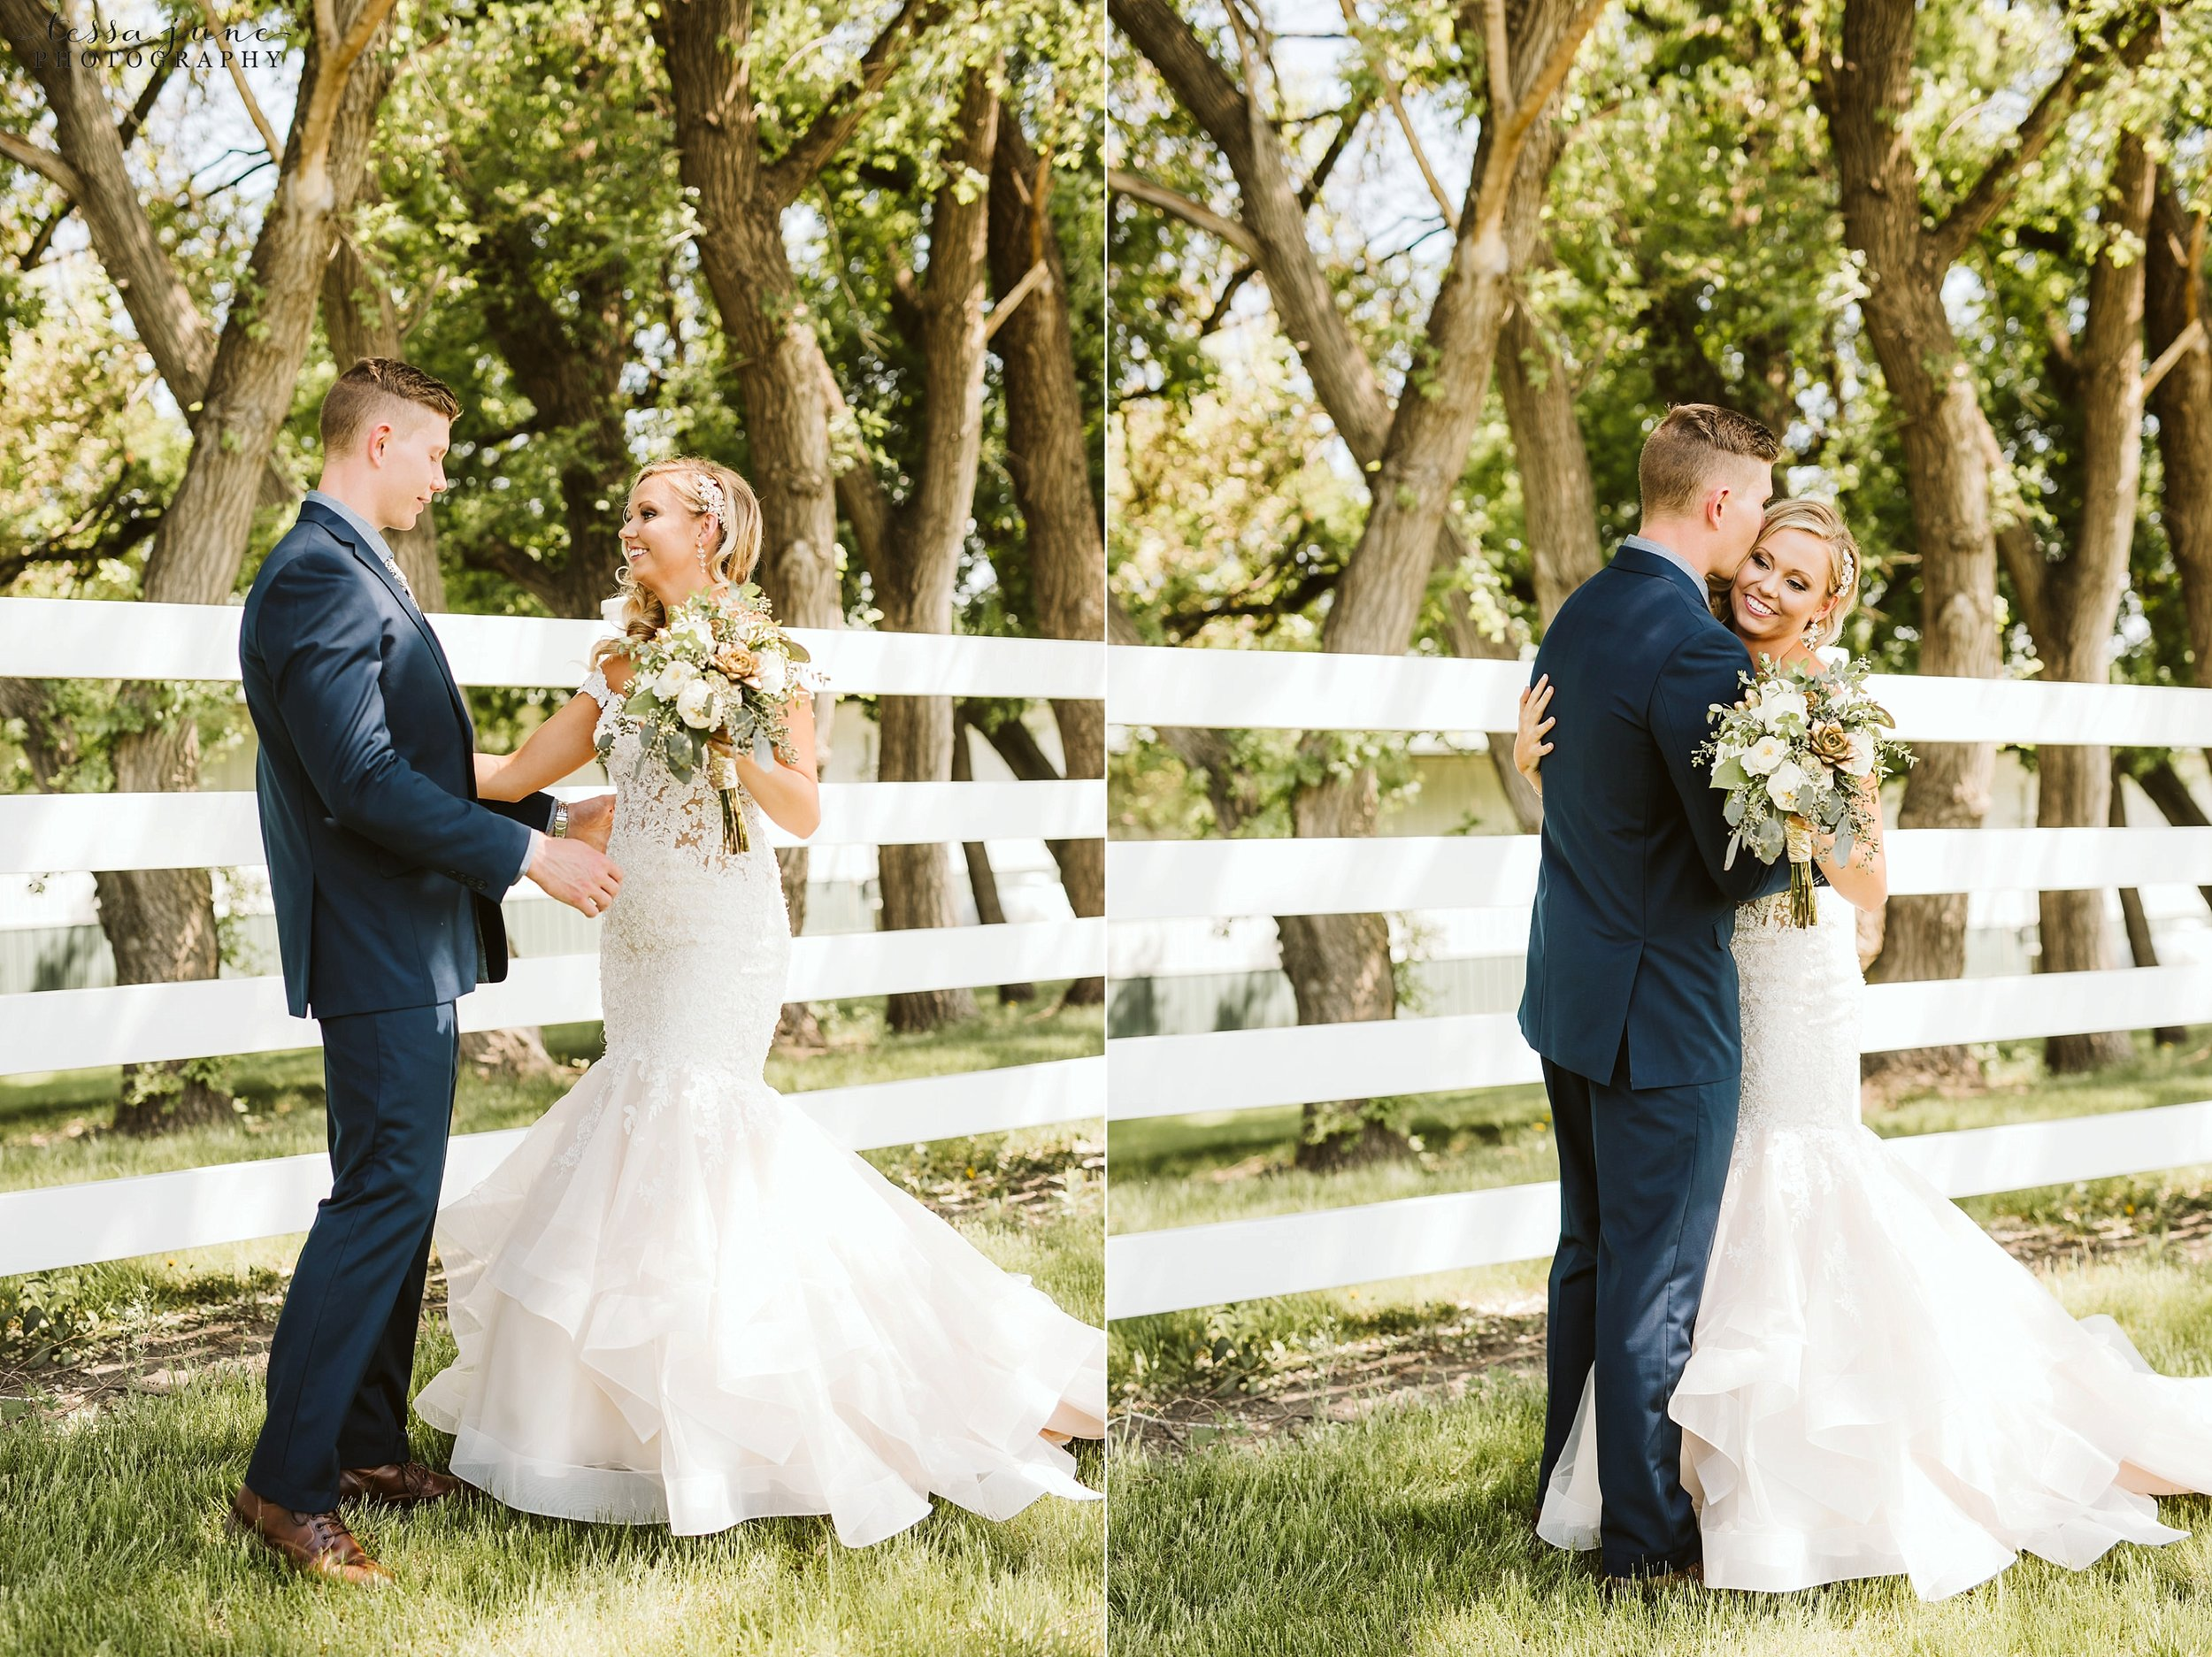 carlos-creek-winery-wedding-alexandria-minnesota-glam-elegant-floral-34.jpg